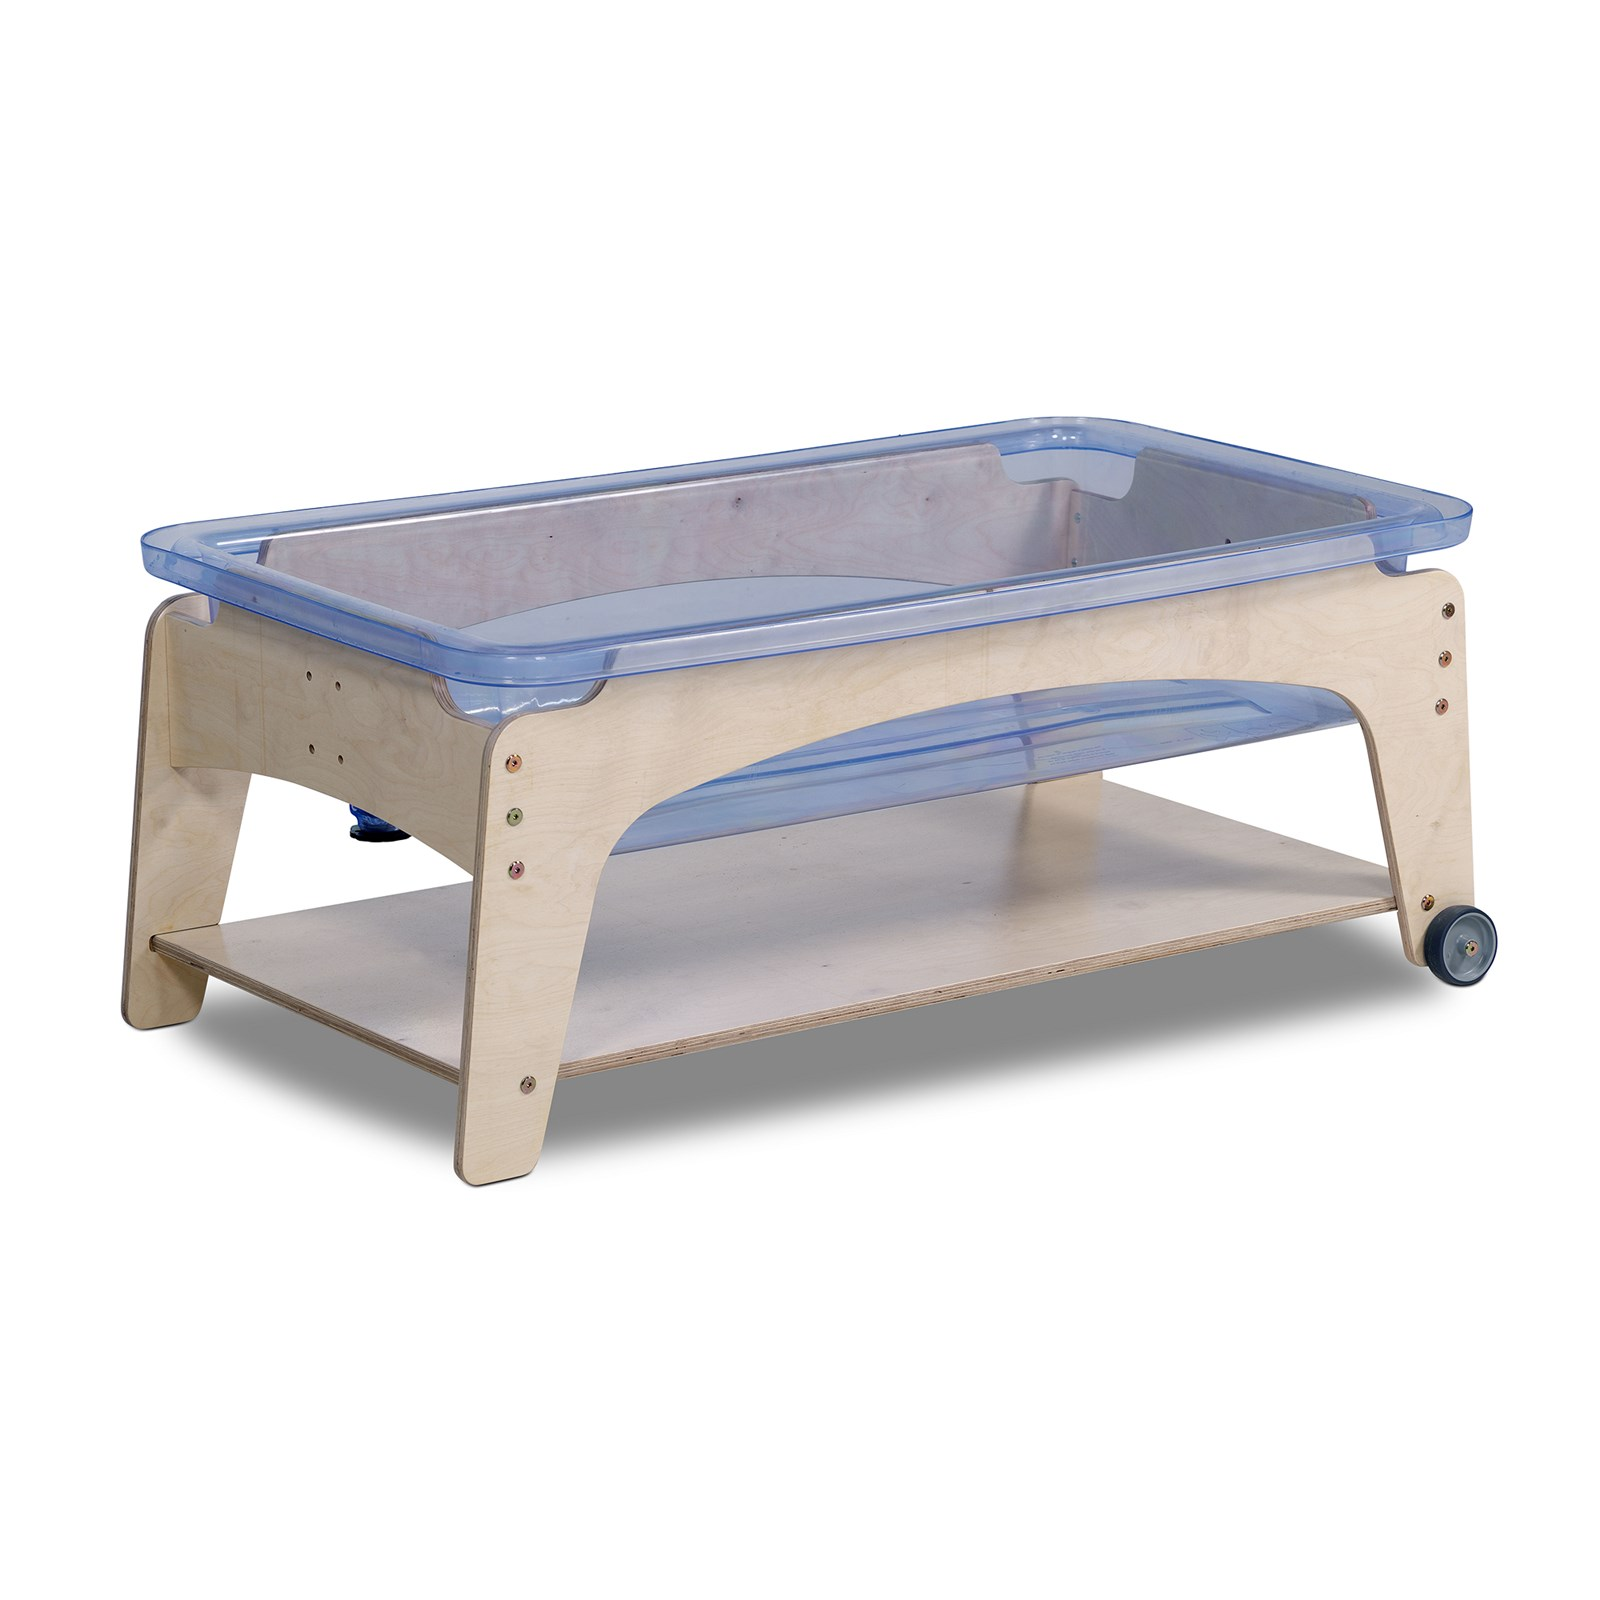 Millhouse Sand and Water Unit - 440mm